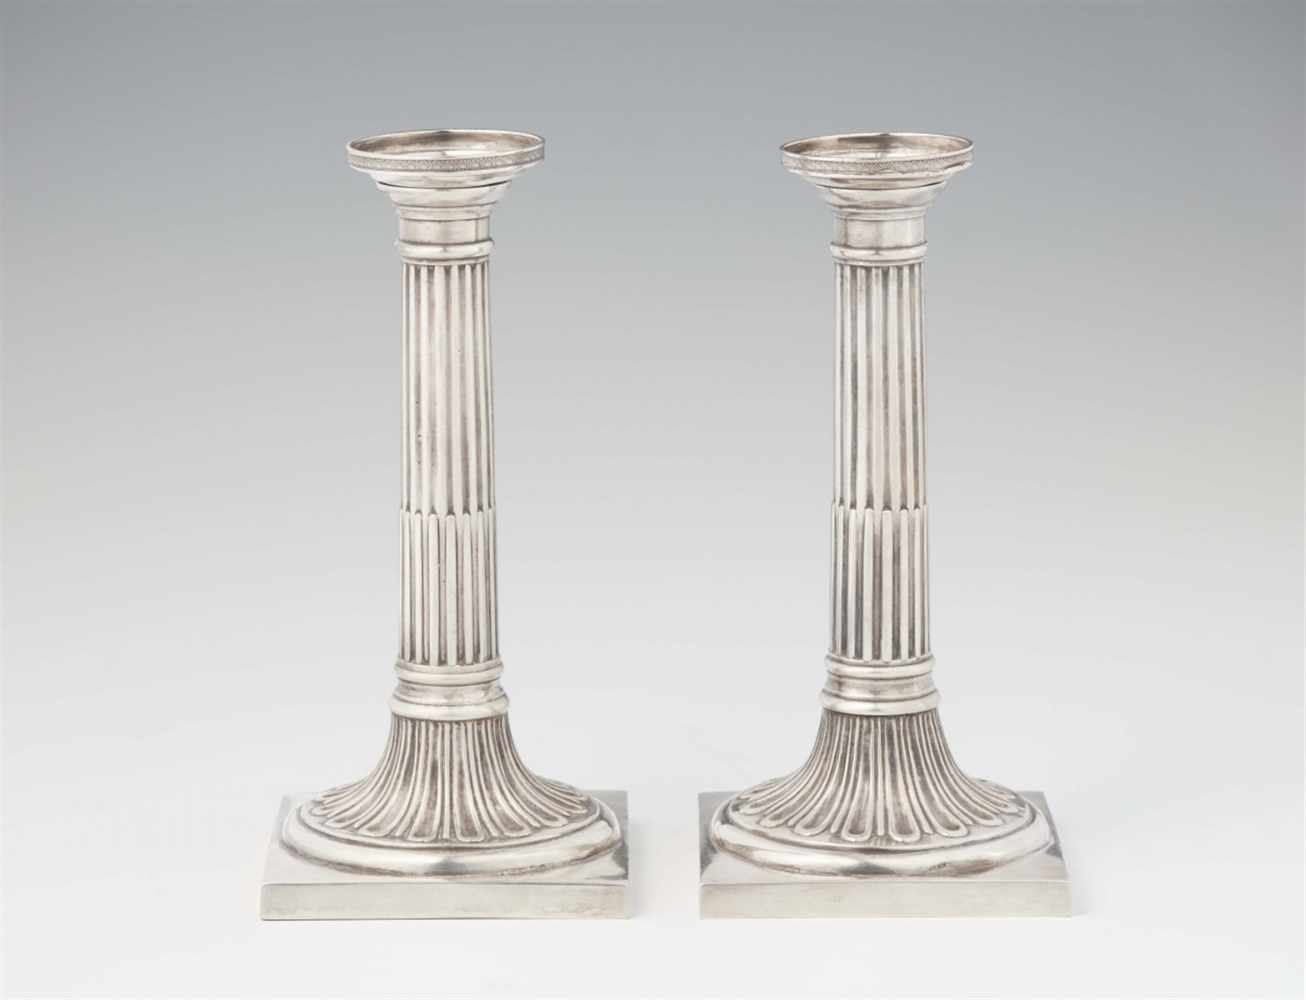 Lot 339 - A pair of Neoclassical Augsburg silver candlesticksFluted column shafts resting on square plinths. H